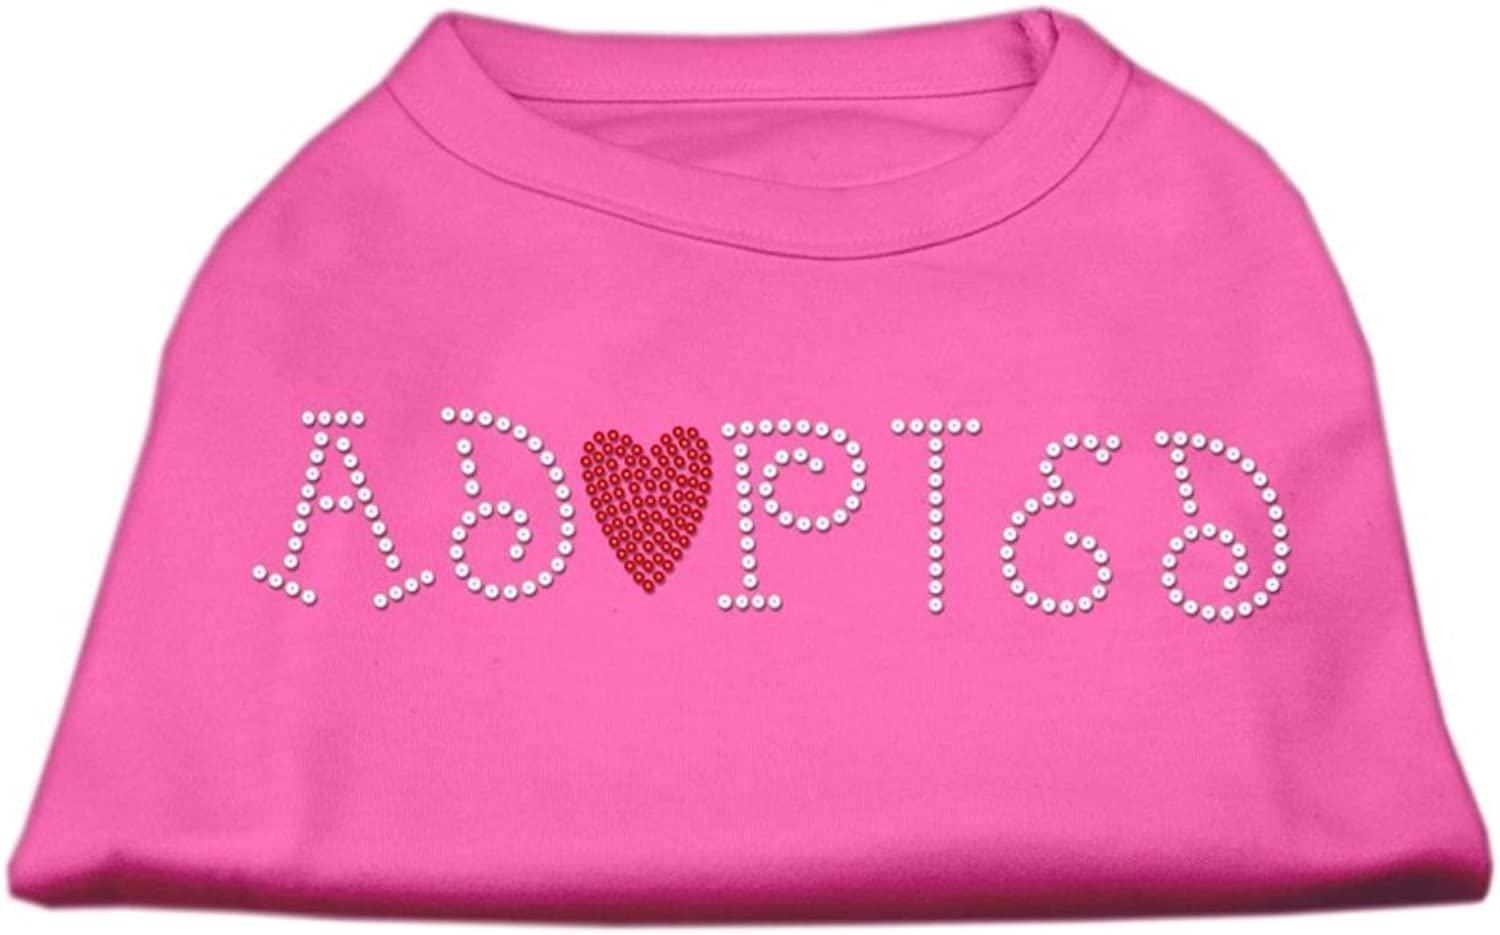 Mirage Pet Products 20Inch Adopted Rhinestone Print Shirt for Pets, 3XLarge, Bright Pink